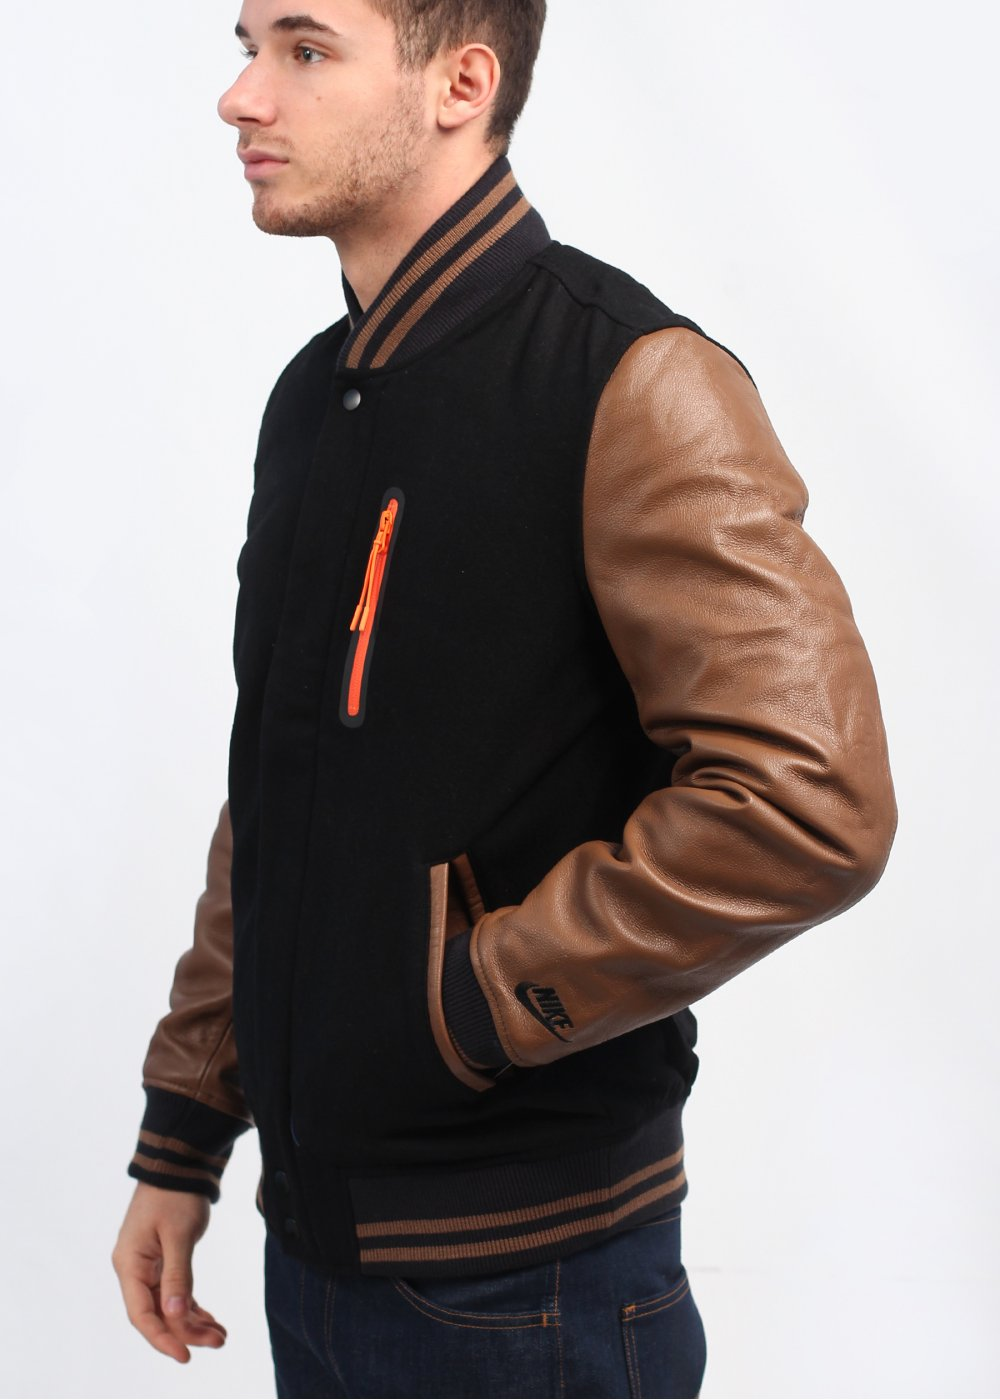 Nike Destroyer Varsity Jacket - Black / Military Brown